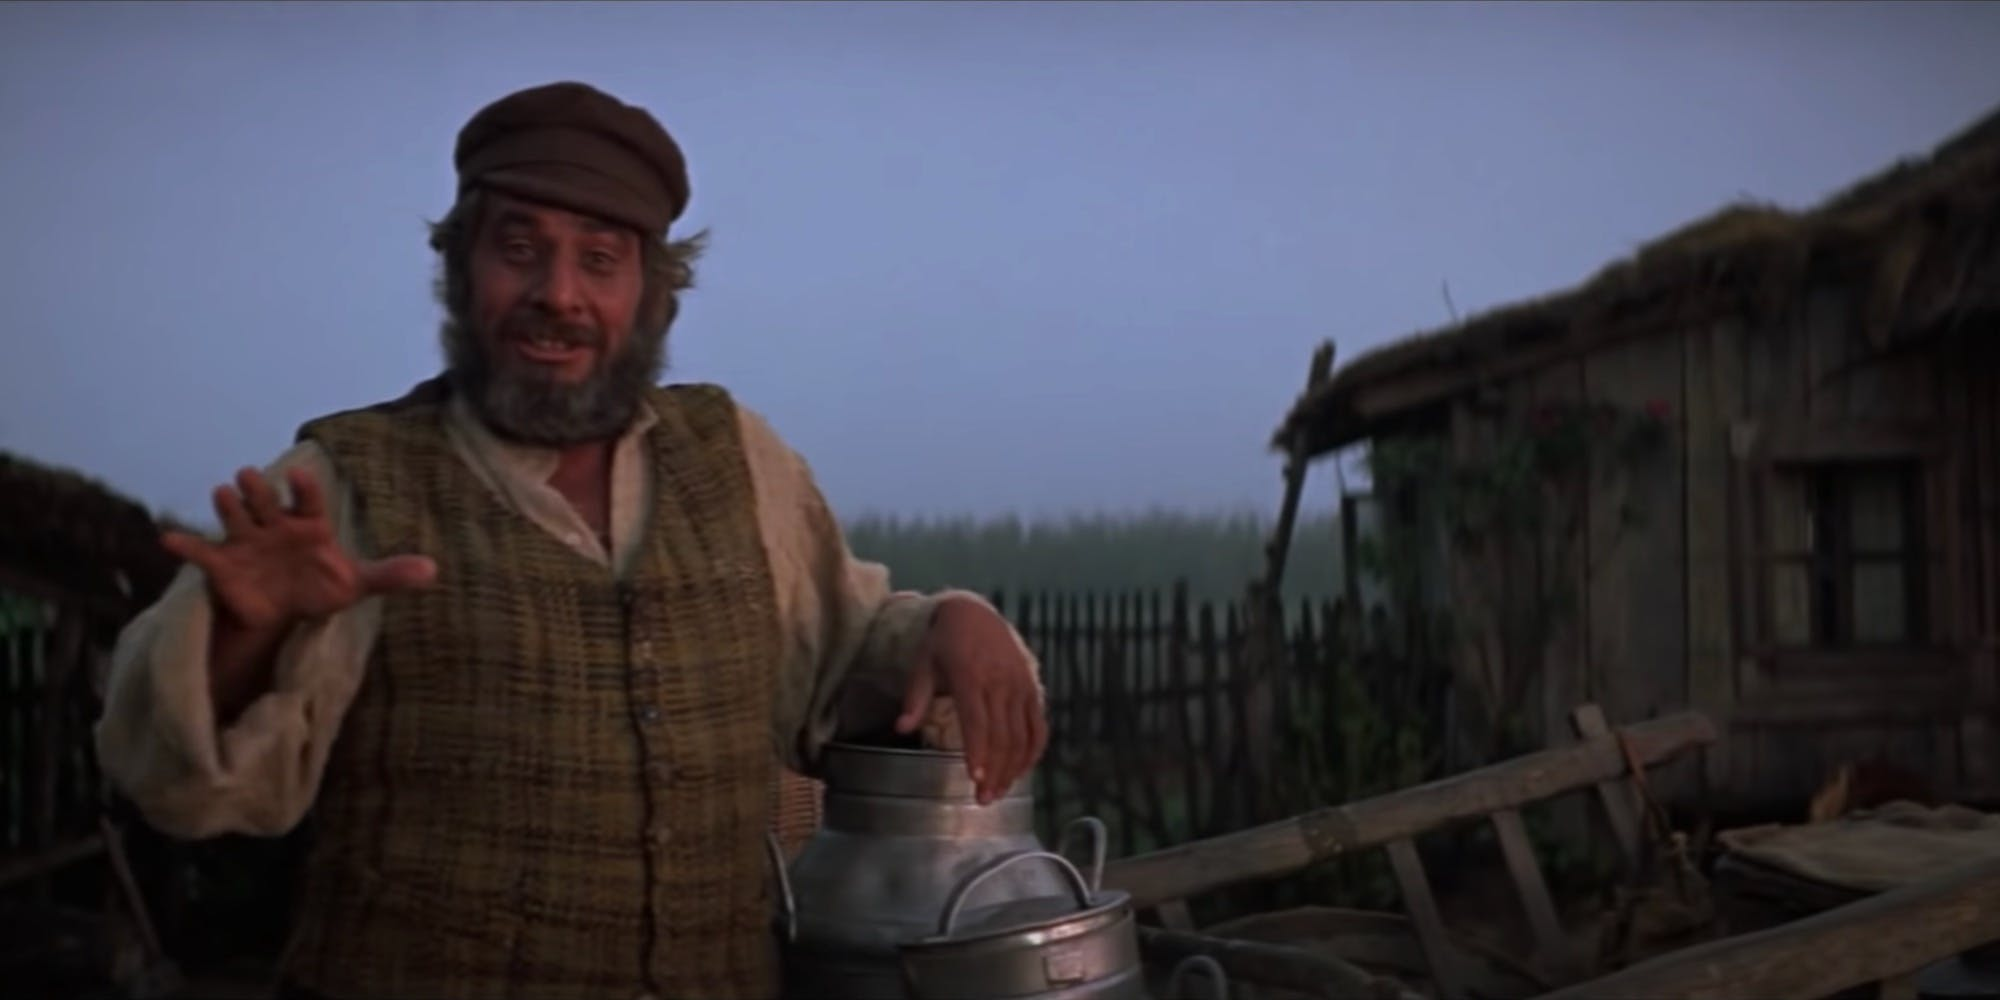 A still from the movie Fiddler on the Roof, which follows a Jewish man in a small Ukrainian village called Anatevka in 1905.